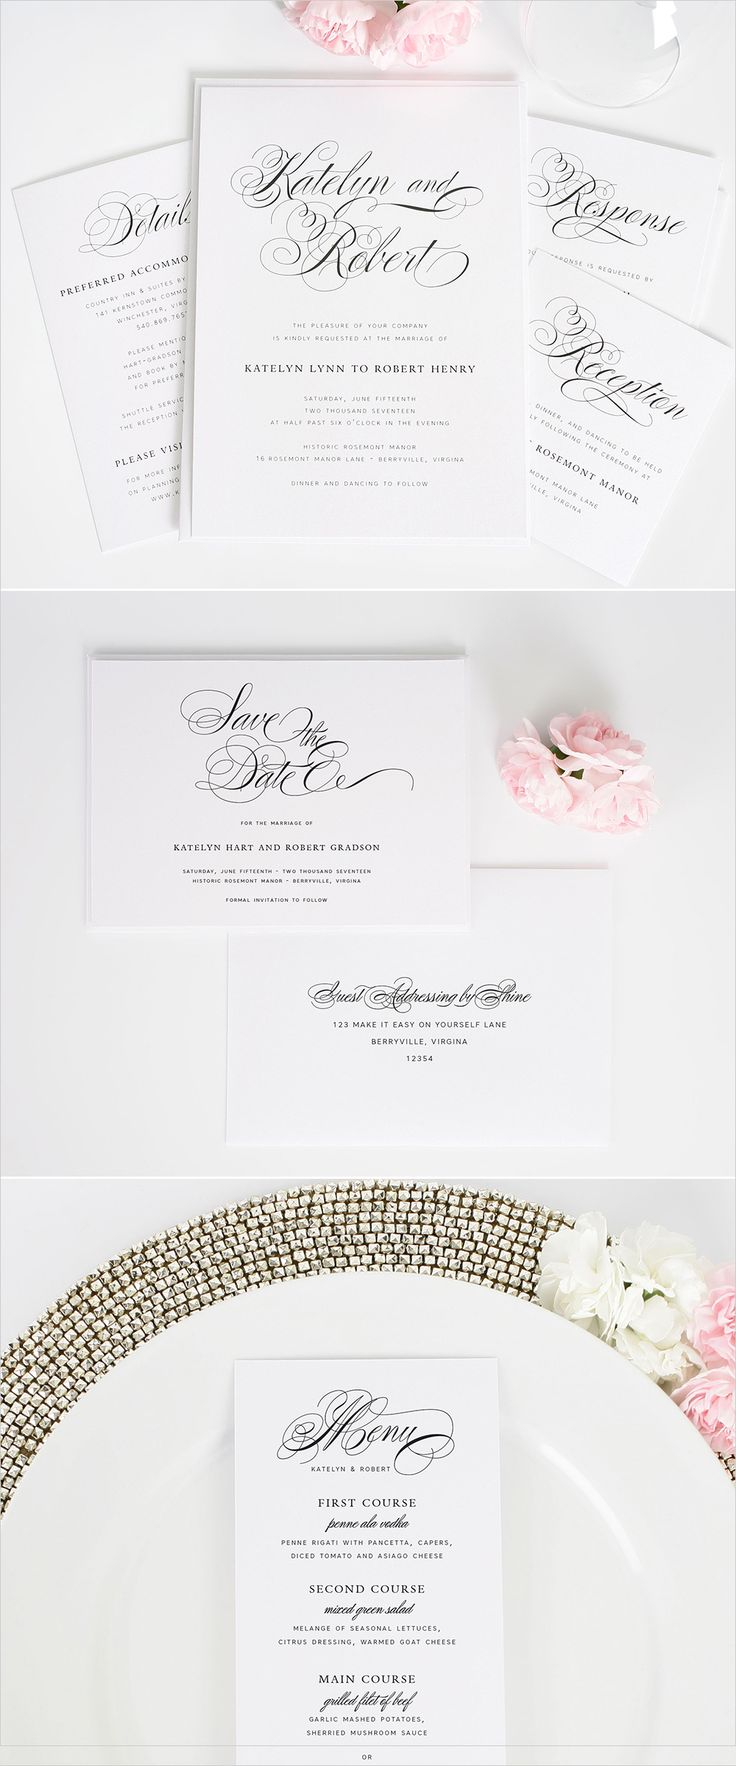 Southern script wedding invitations